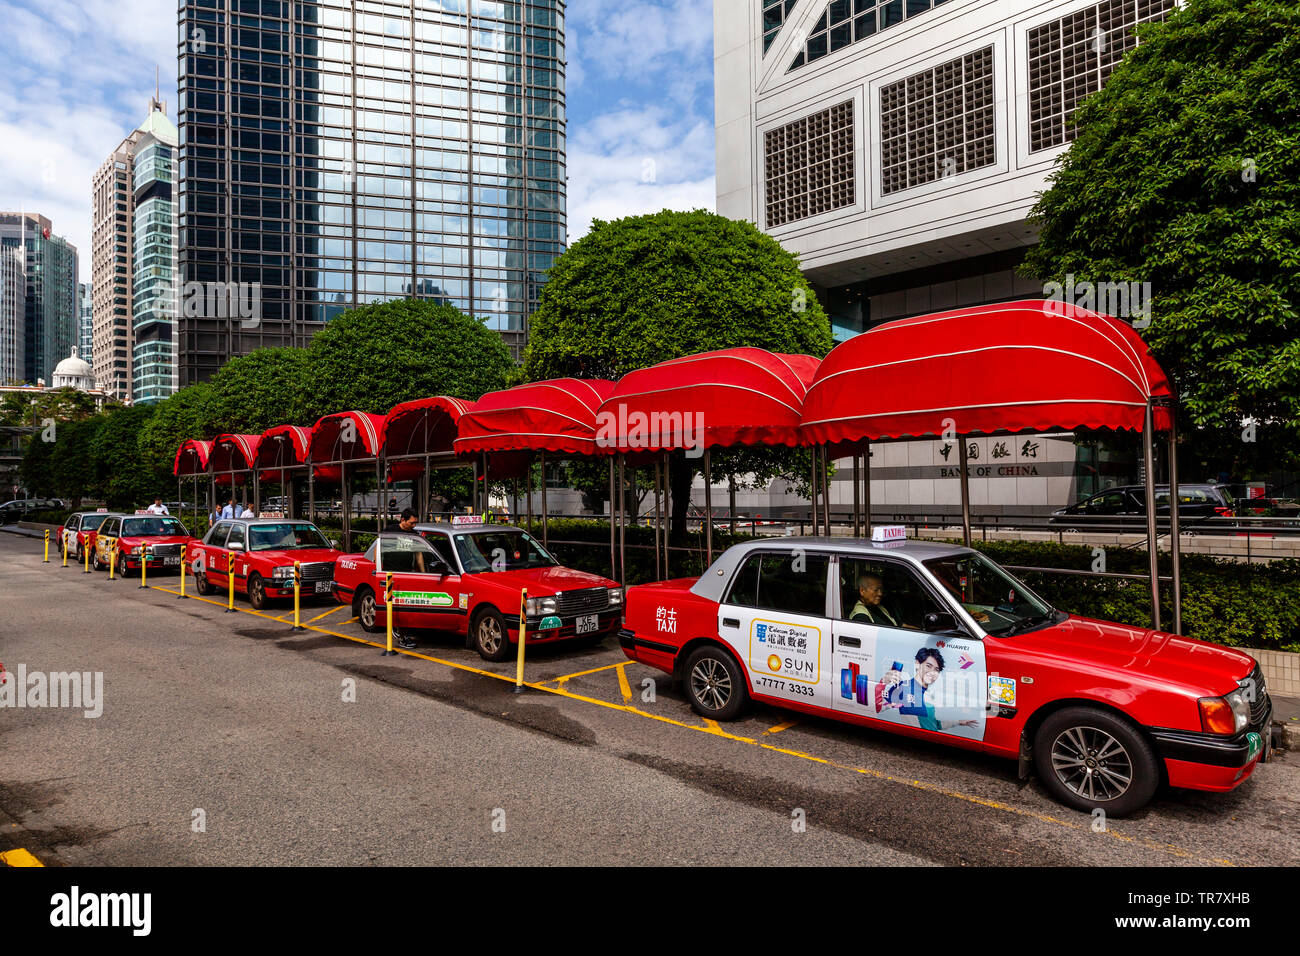 A Line Of Red and White Taxicabs, Hong Kong, China - Stock Image